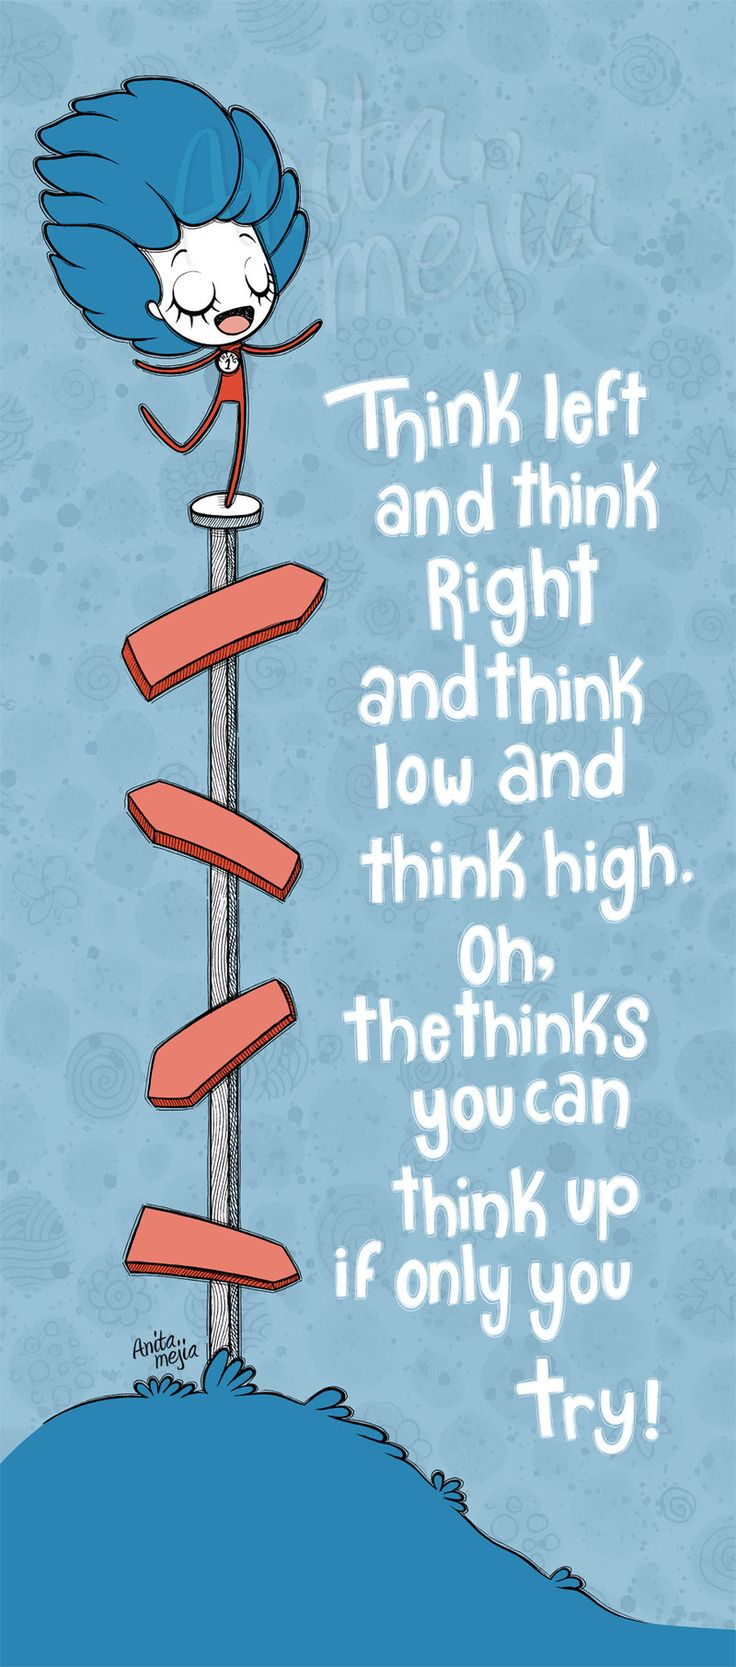 Think left and think right and think low and think high. Oh, the thinks you can think up if only you try! - Creativity quote by Dr. Seuss